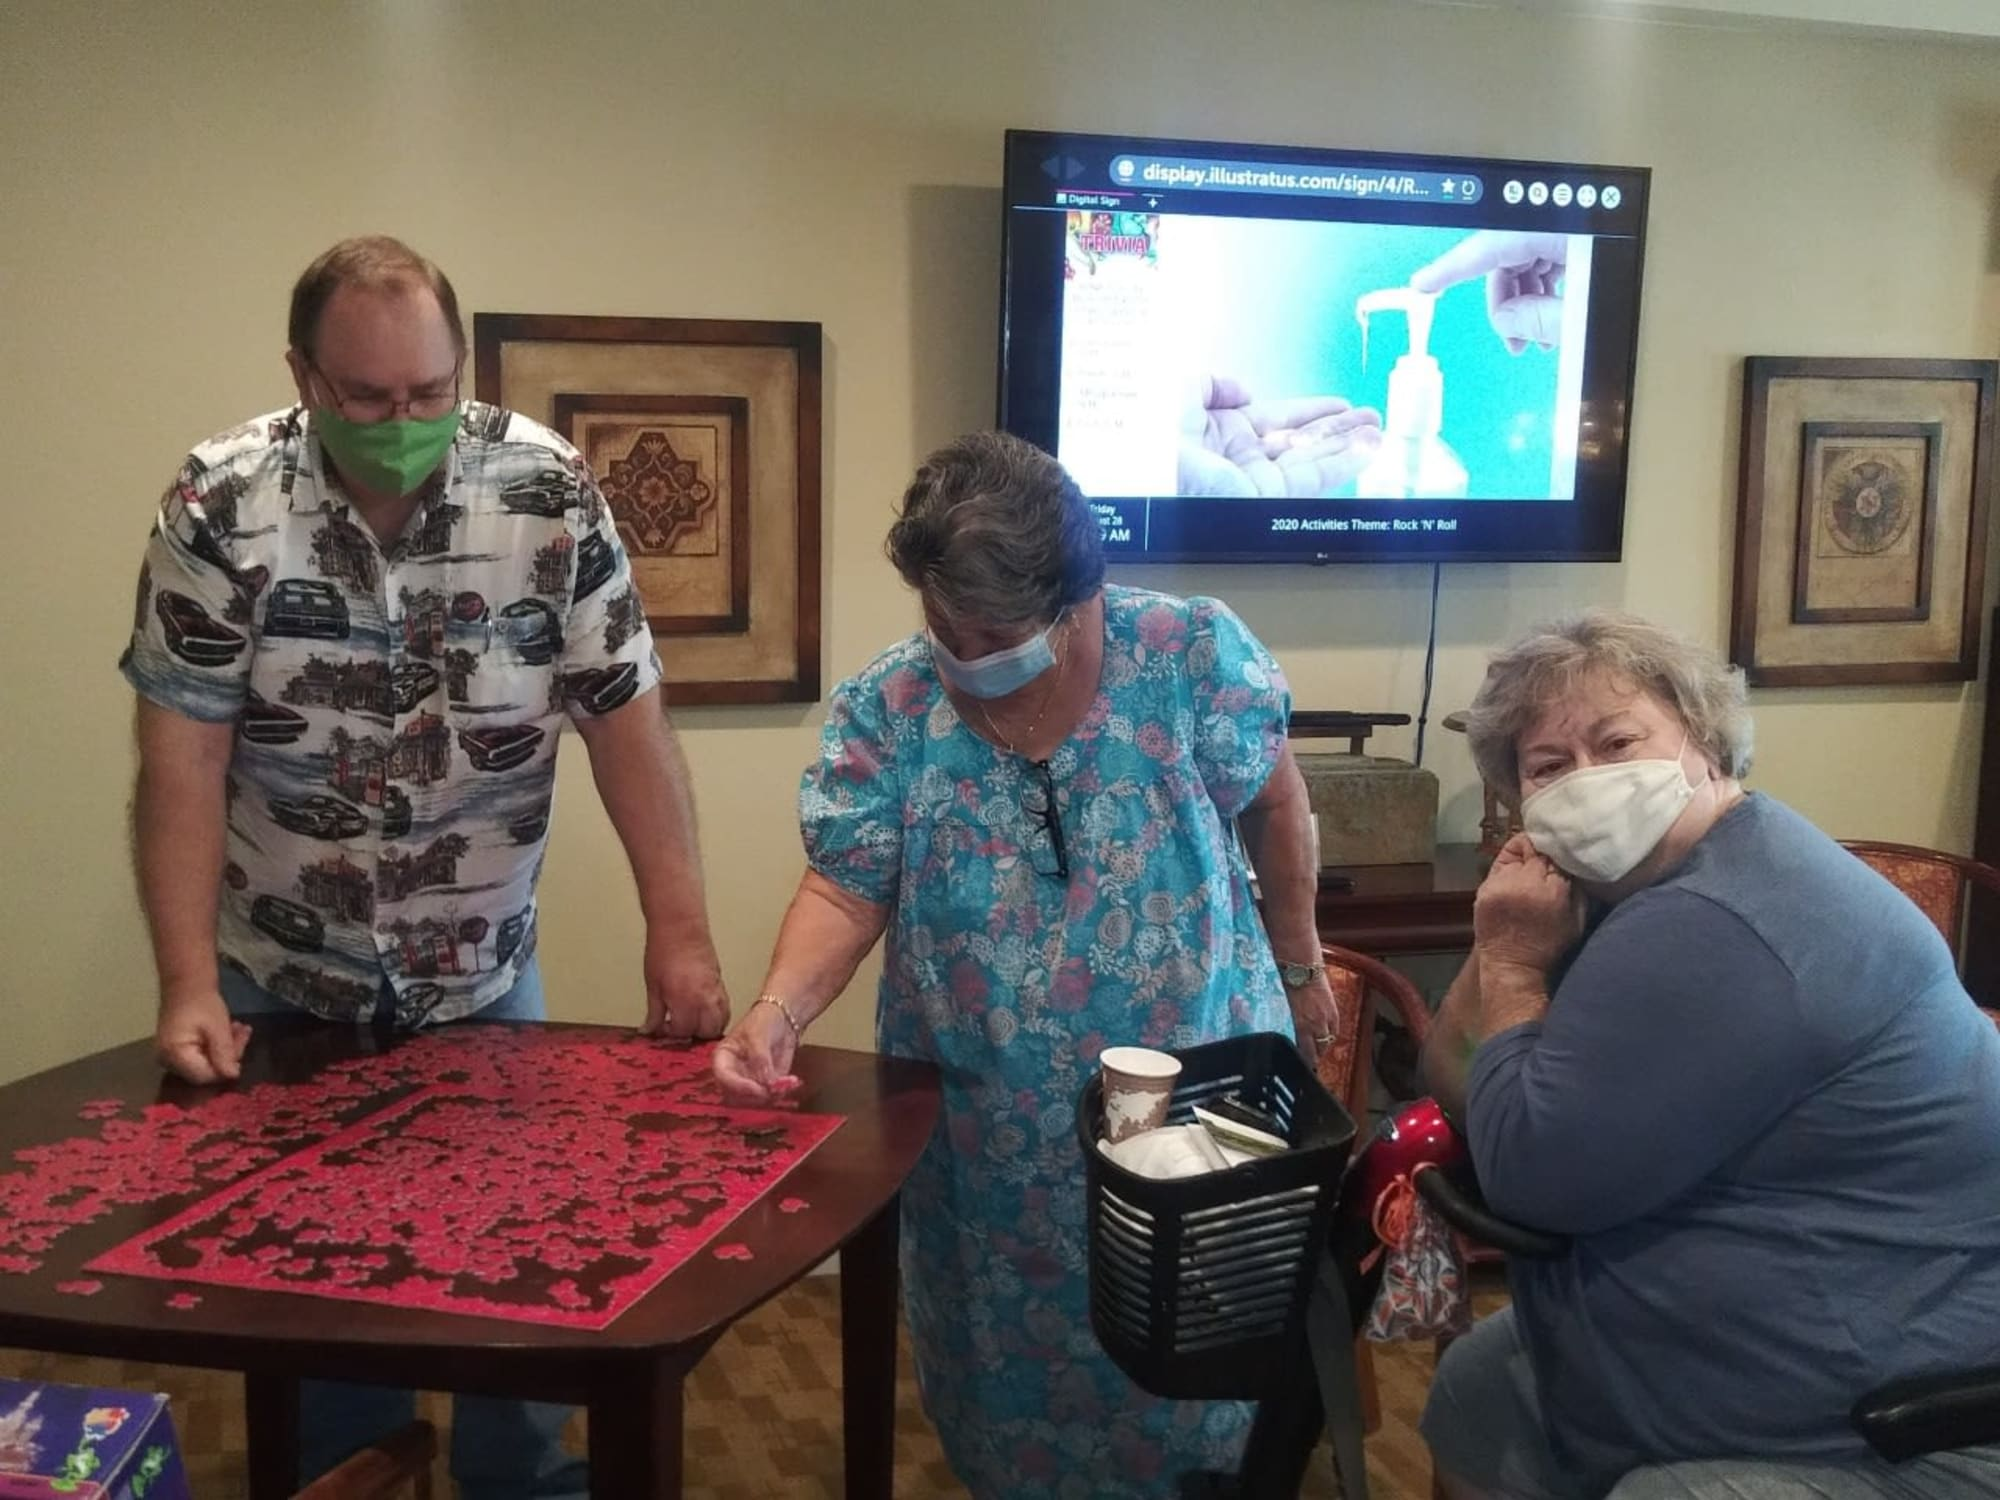 Doing a puzzle at The Commons at Union Ranch in Manteca, California